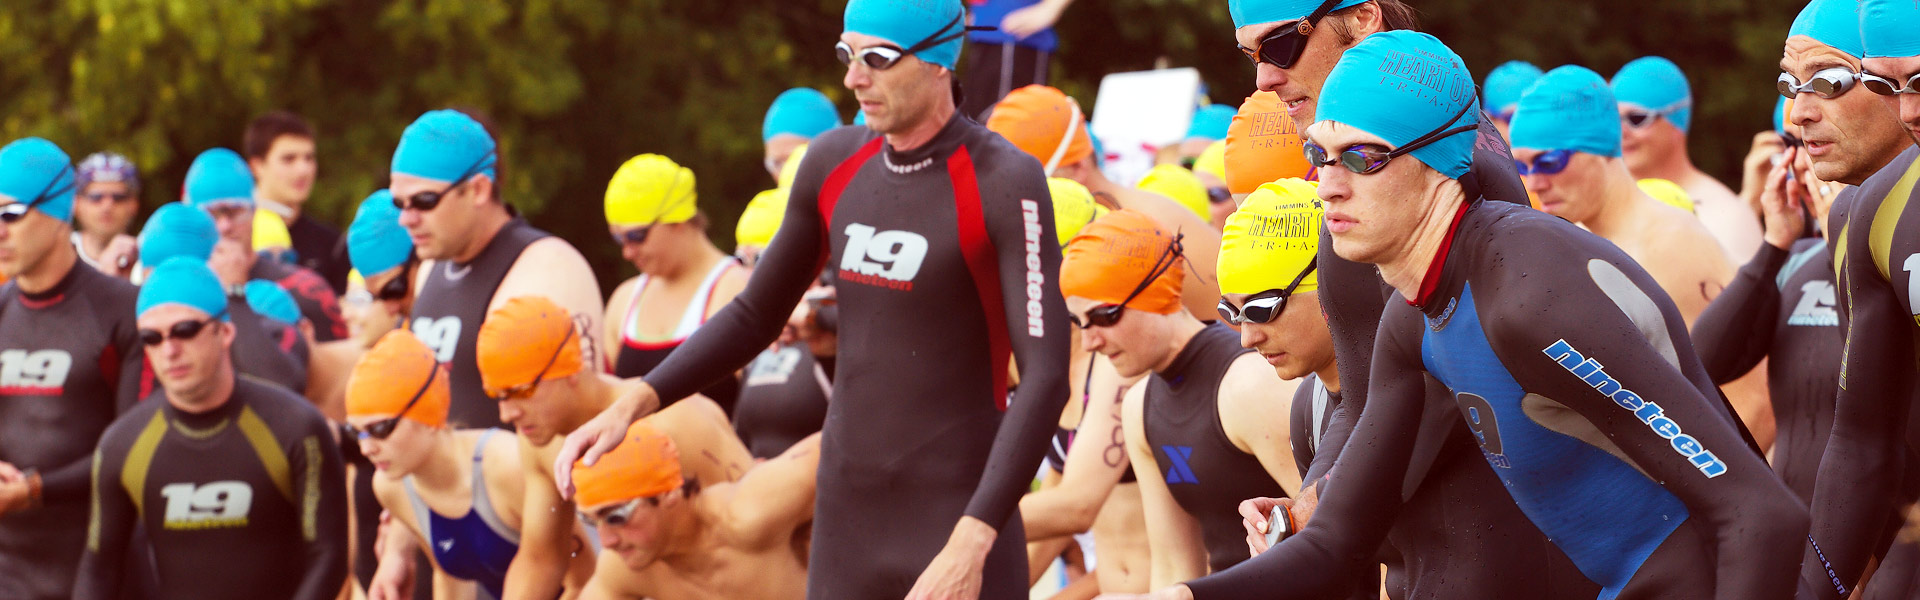 <h2>Heart of Gold Triathlon</h2> Swim, bike and run on Sunday July 9th, 2017 in the fastest growing sport in North America!